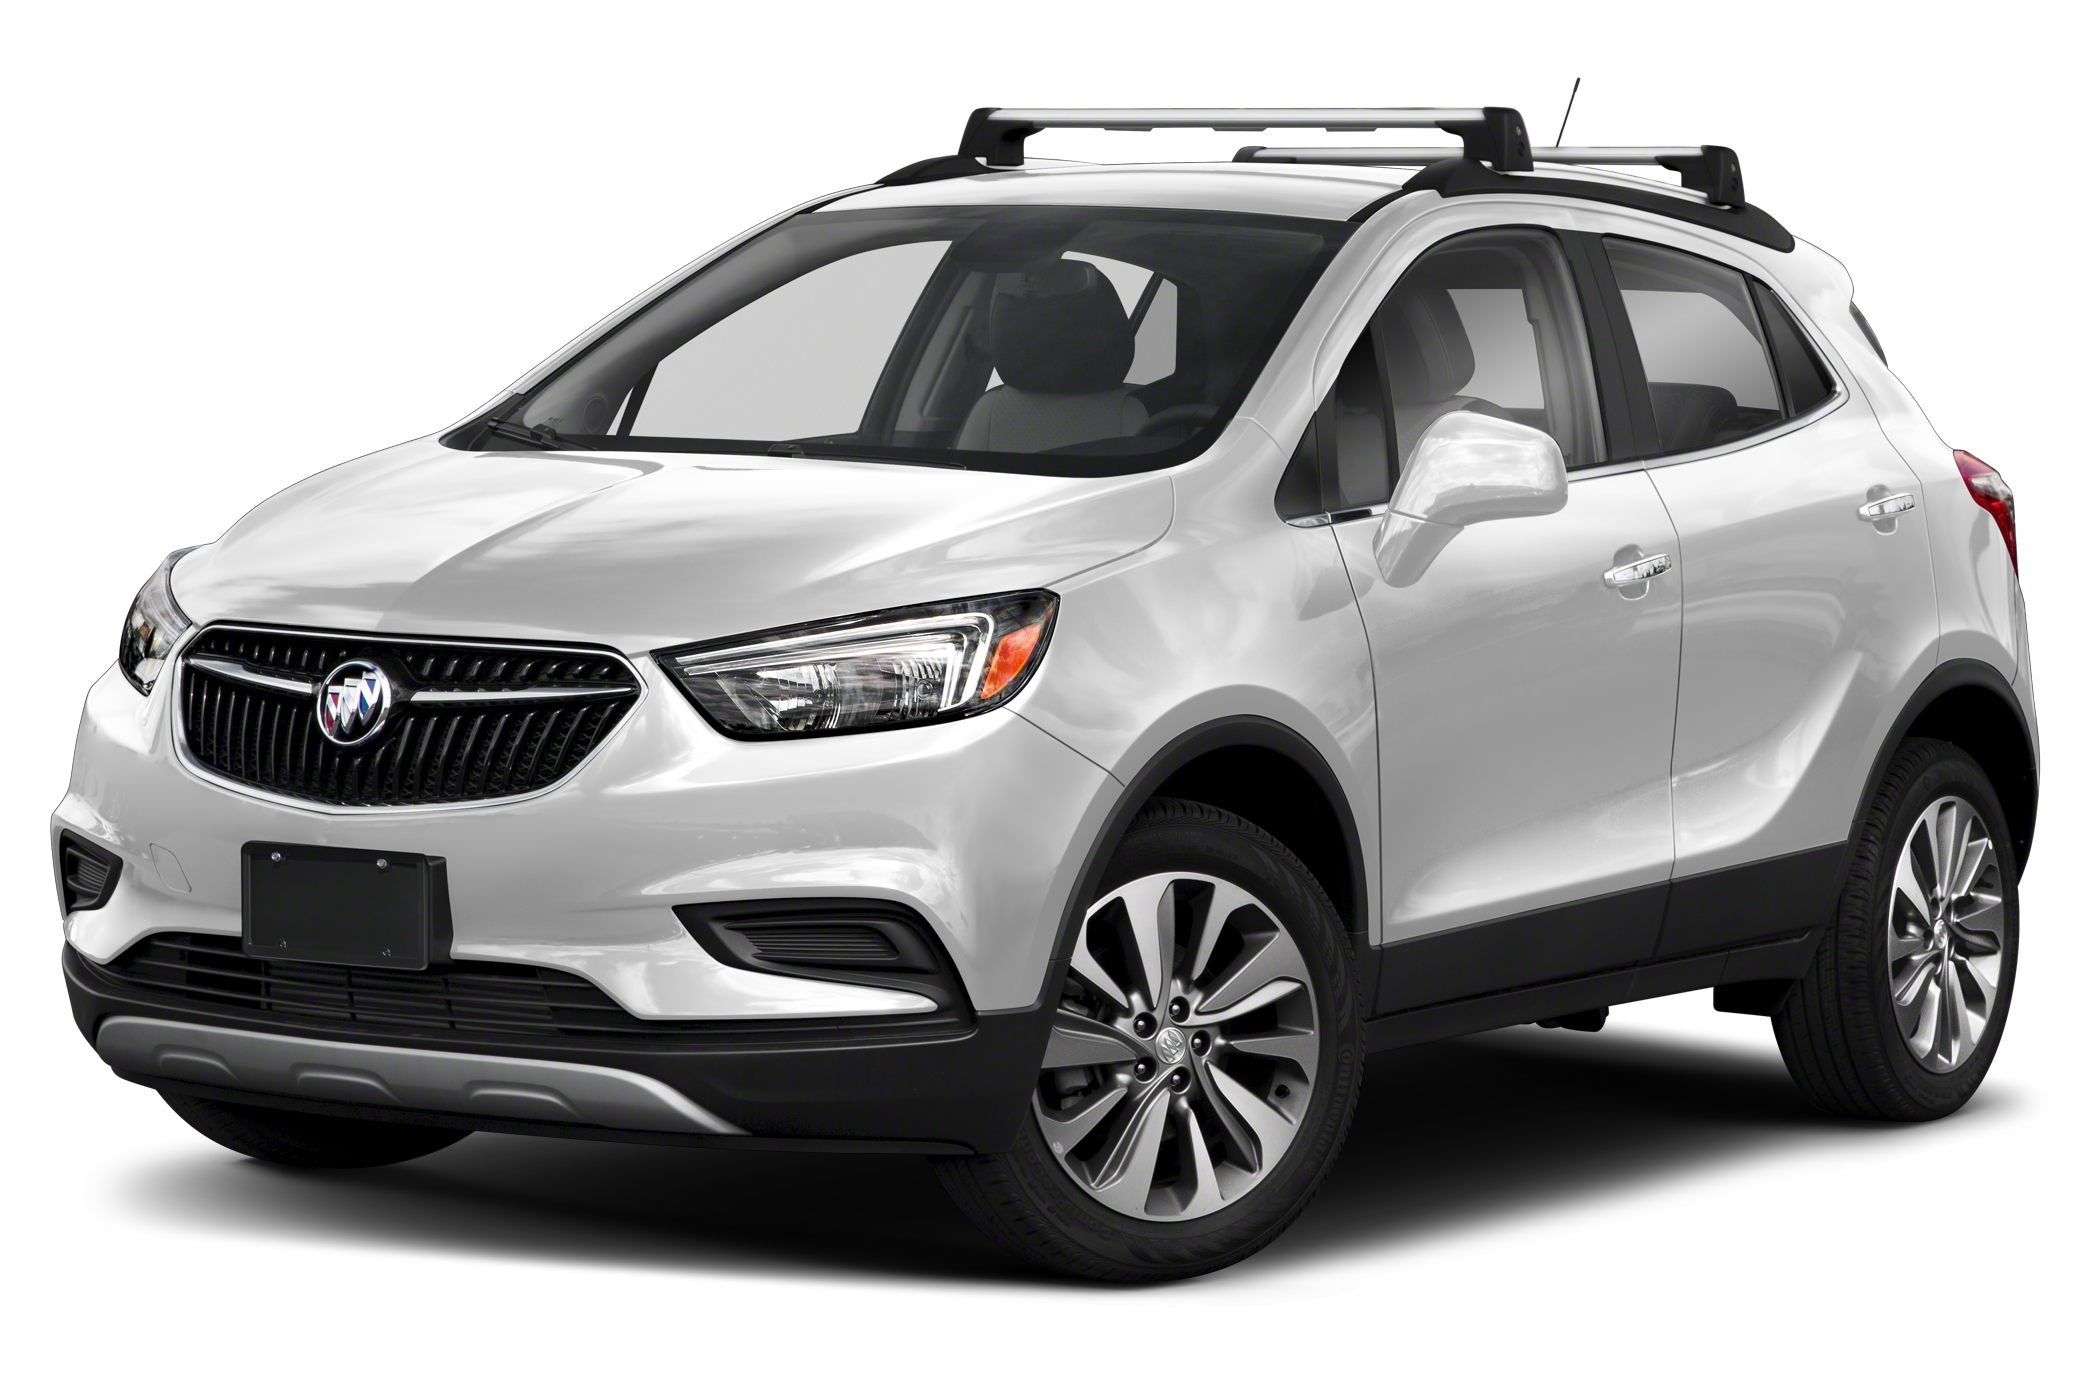 2021 Buick Encore Pictures New 2021 Buick Encore Engine Options, Features, Incentives